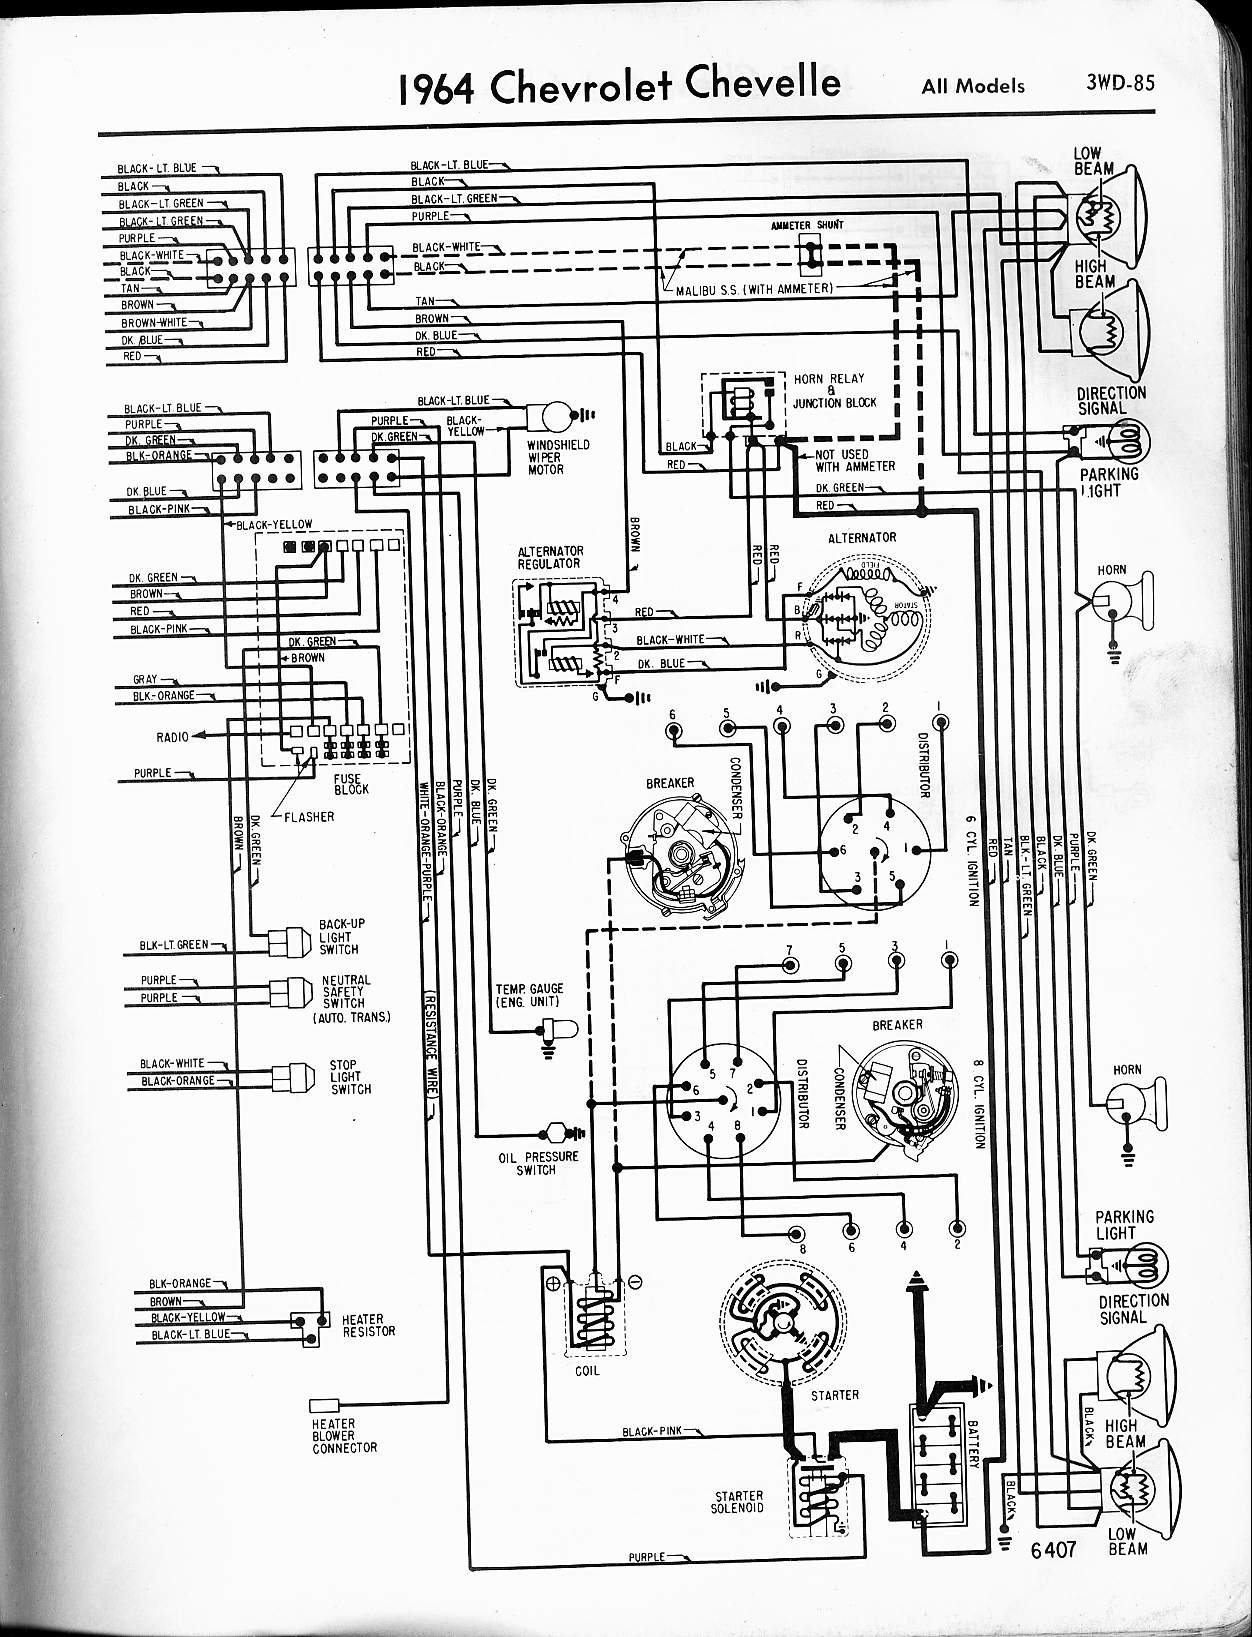 71 Chevelle Ss Dash Wiring Diagram Guide And Troubleshooting Of Mustang 1972 Todays Rh 13 1 9 1813weddingbarn Com